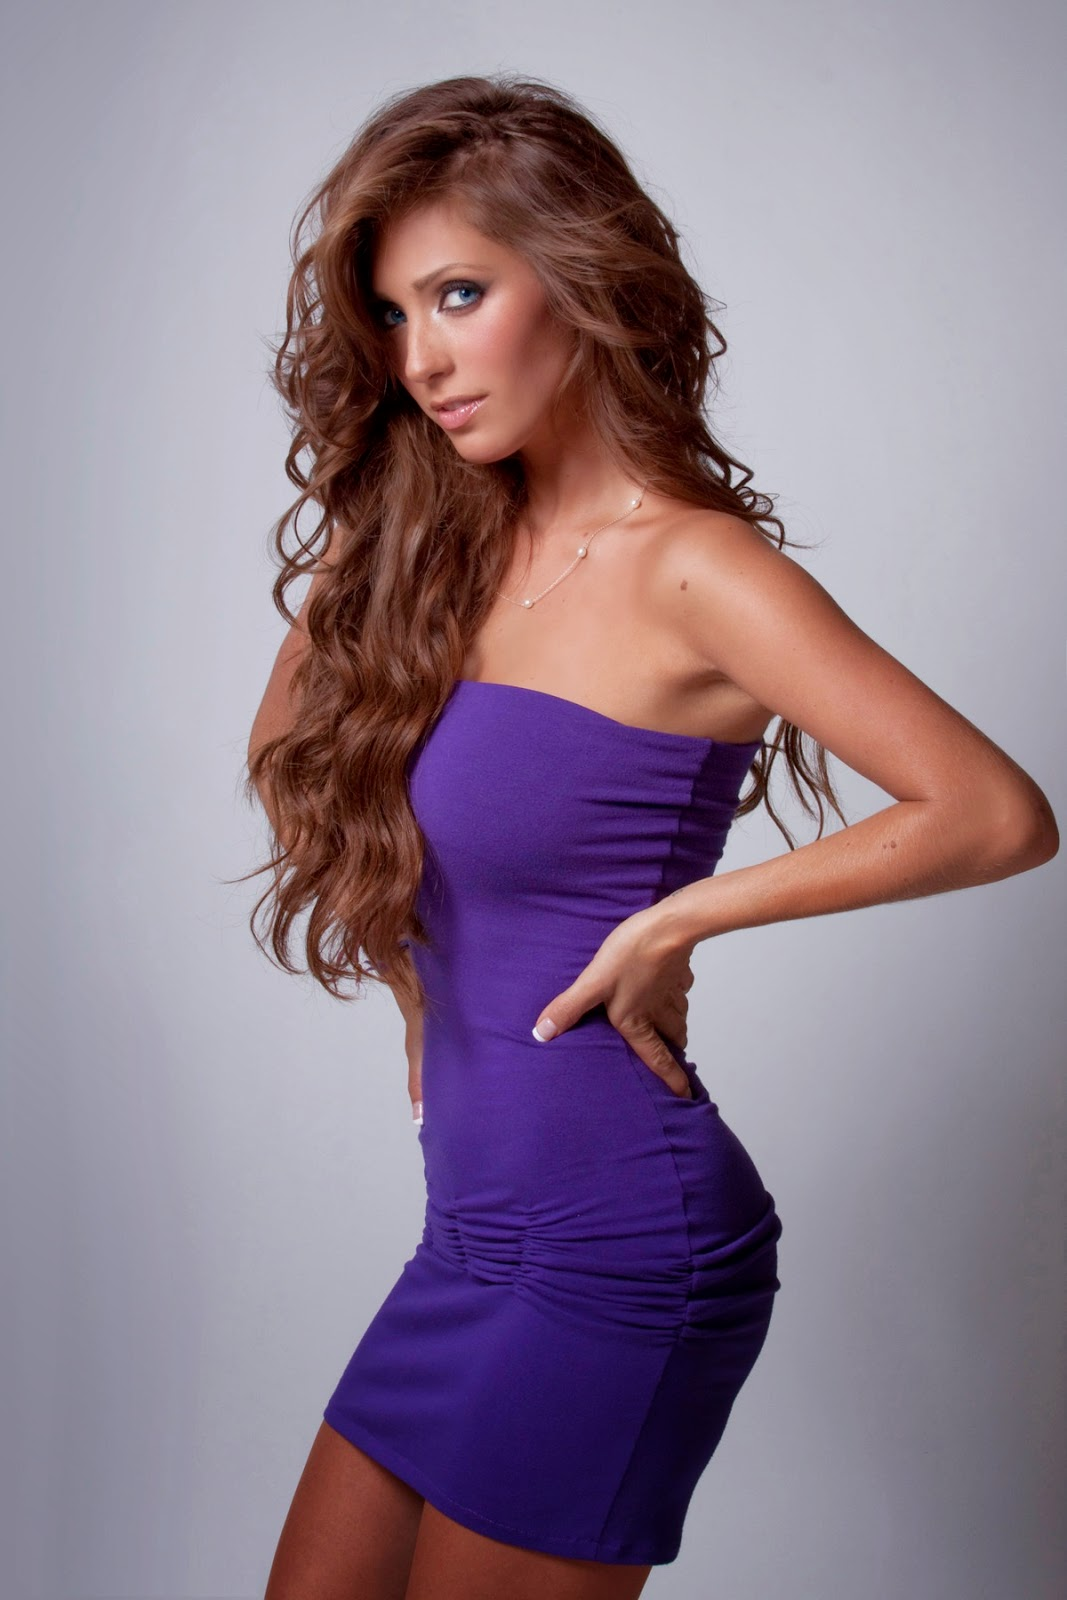 Anahi Giovanna Wallpapers Free Download